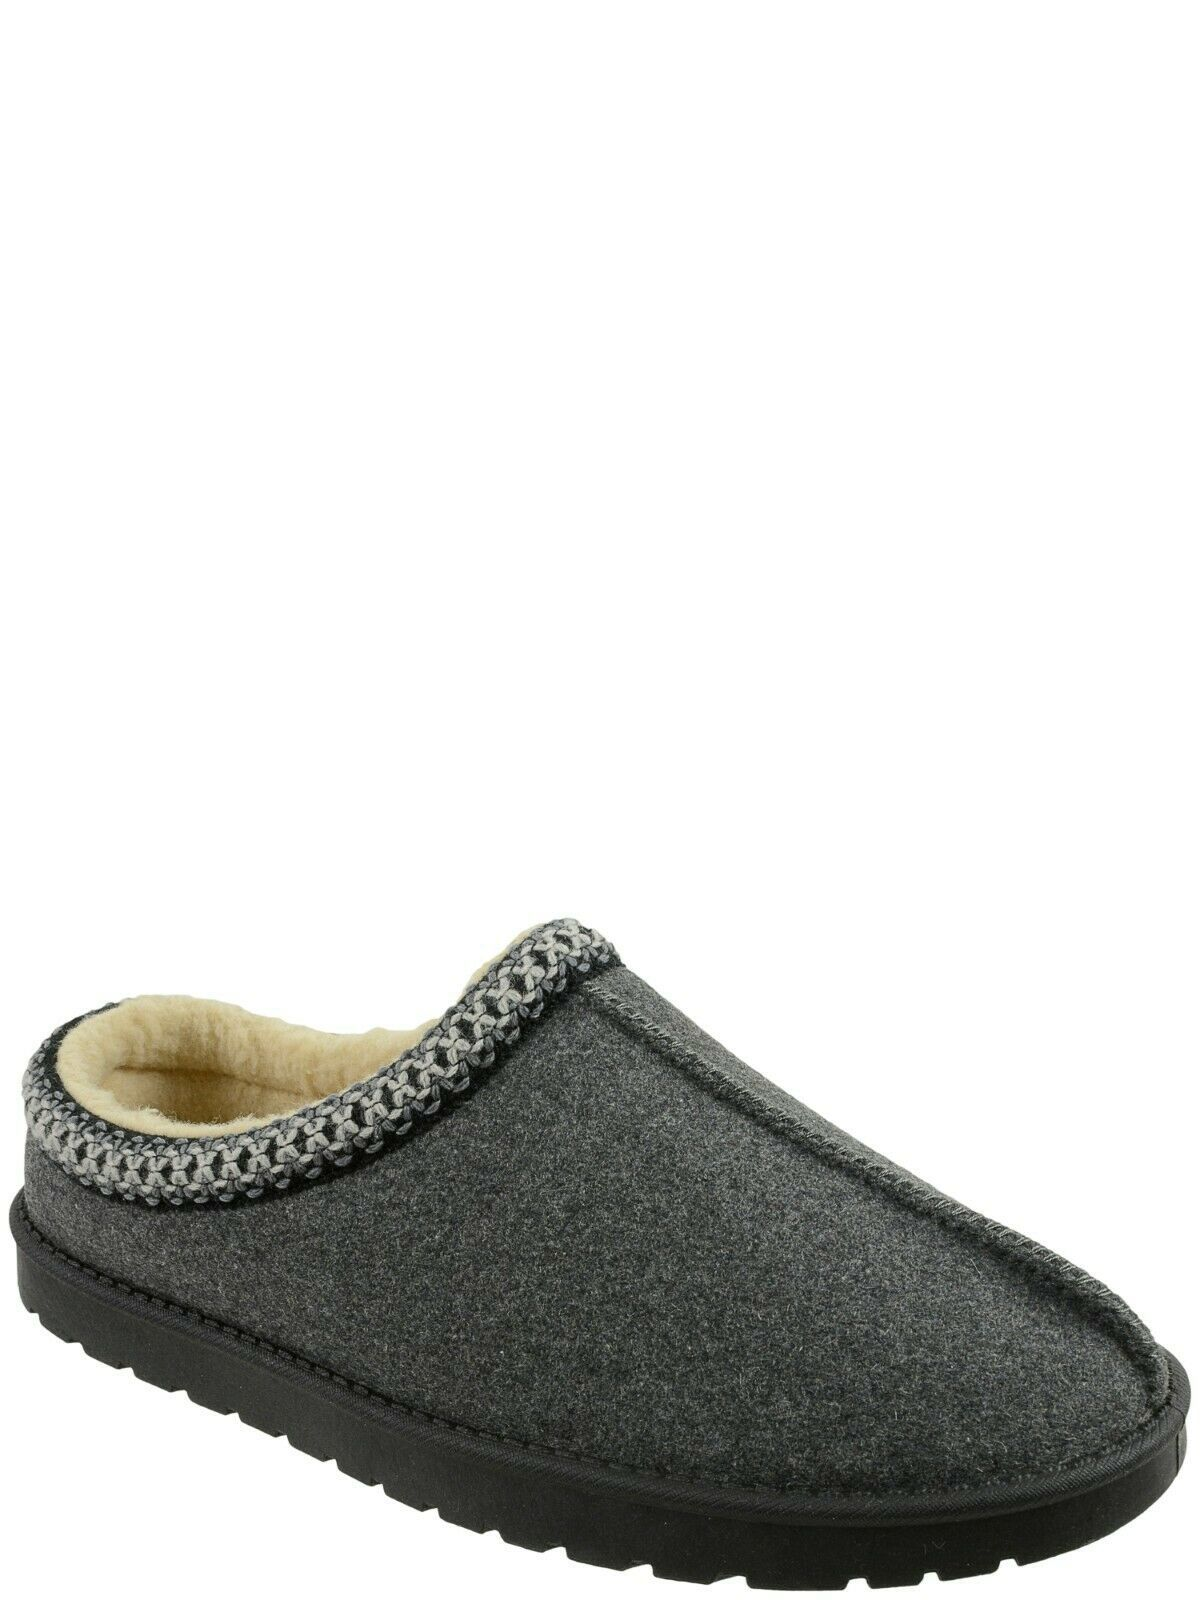 Primary image for George Men's Memory Foam Knit Collar Clog Slippers Size 11/12 Gray NEW